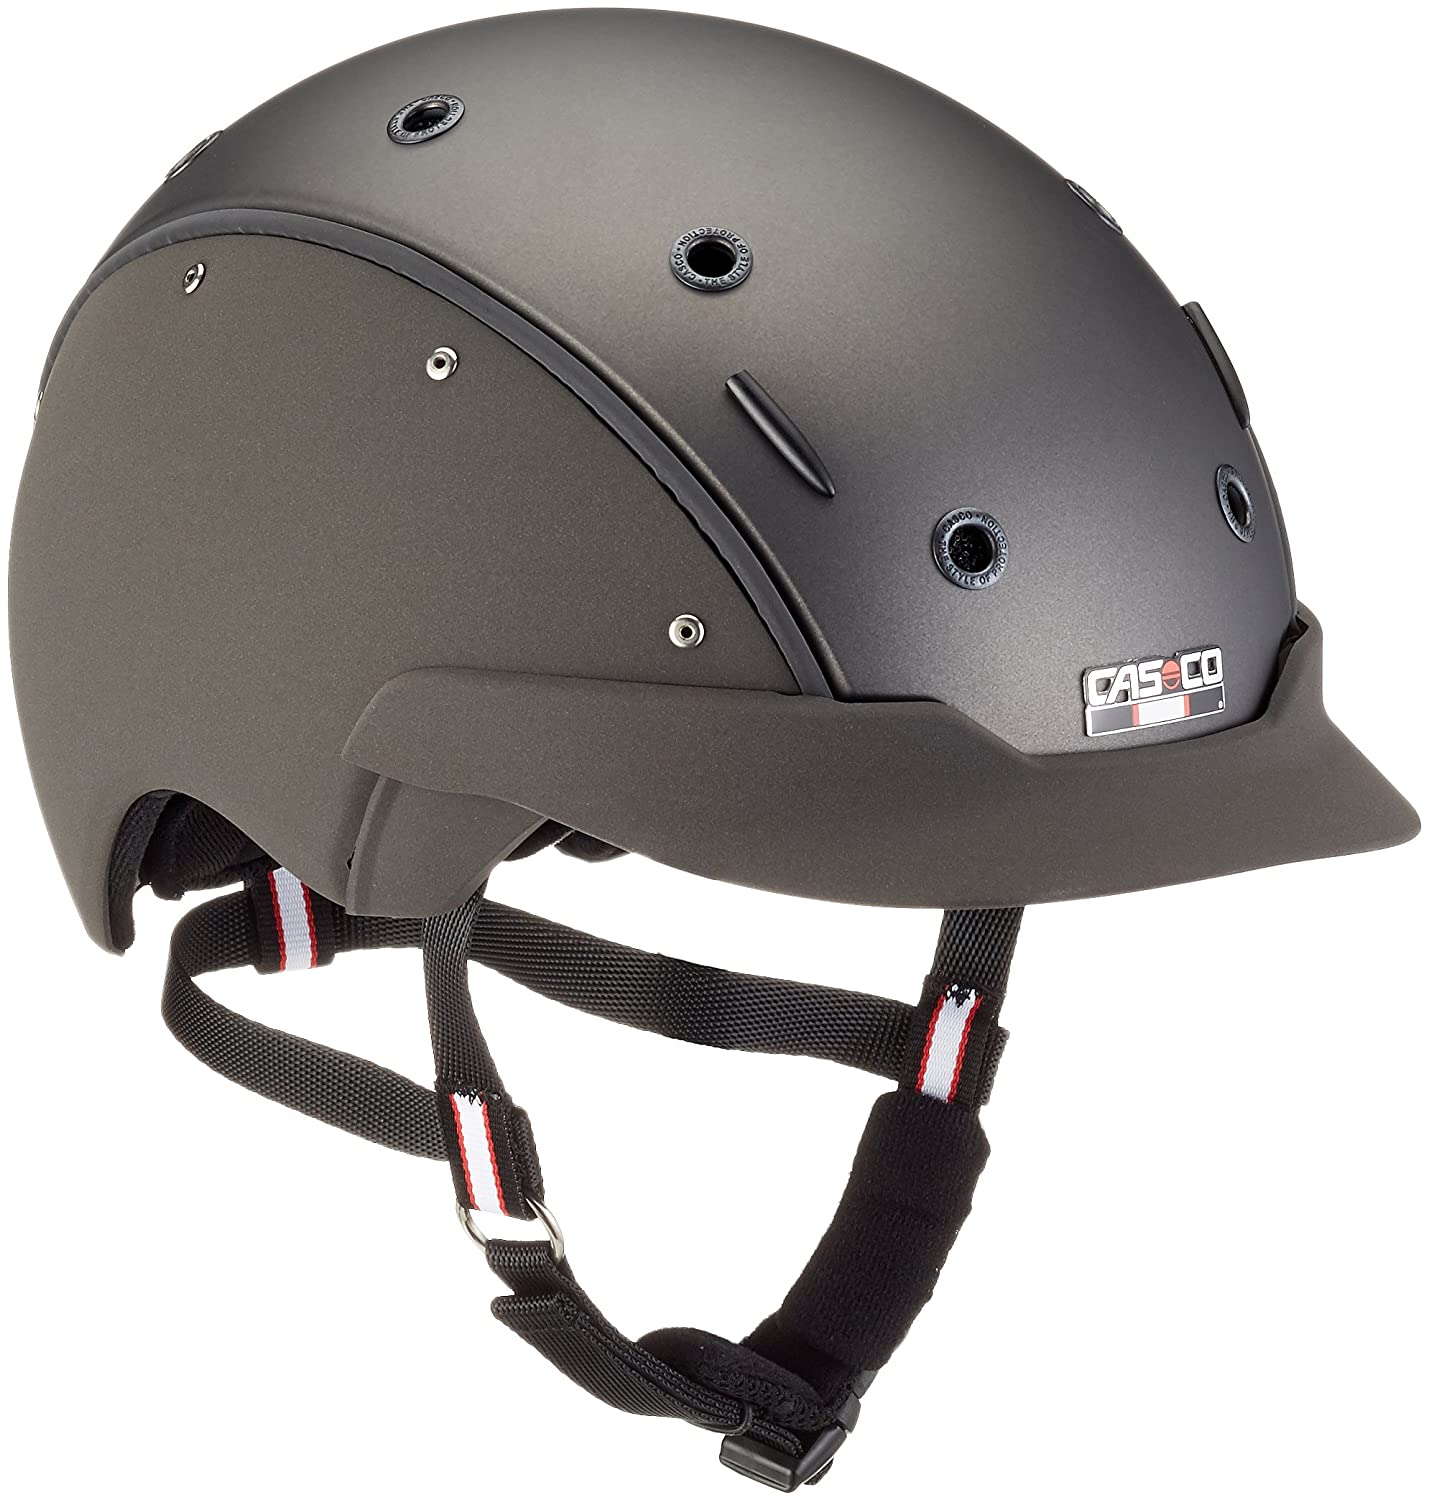 EKKIA(エキア) 乗馬用具 グレー CASCO CHAMP-6 STR.GREY S/54-56 912371001 912371001   B014JIXN4I